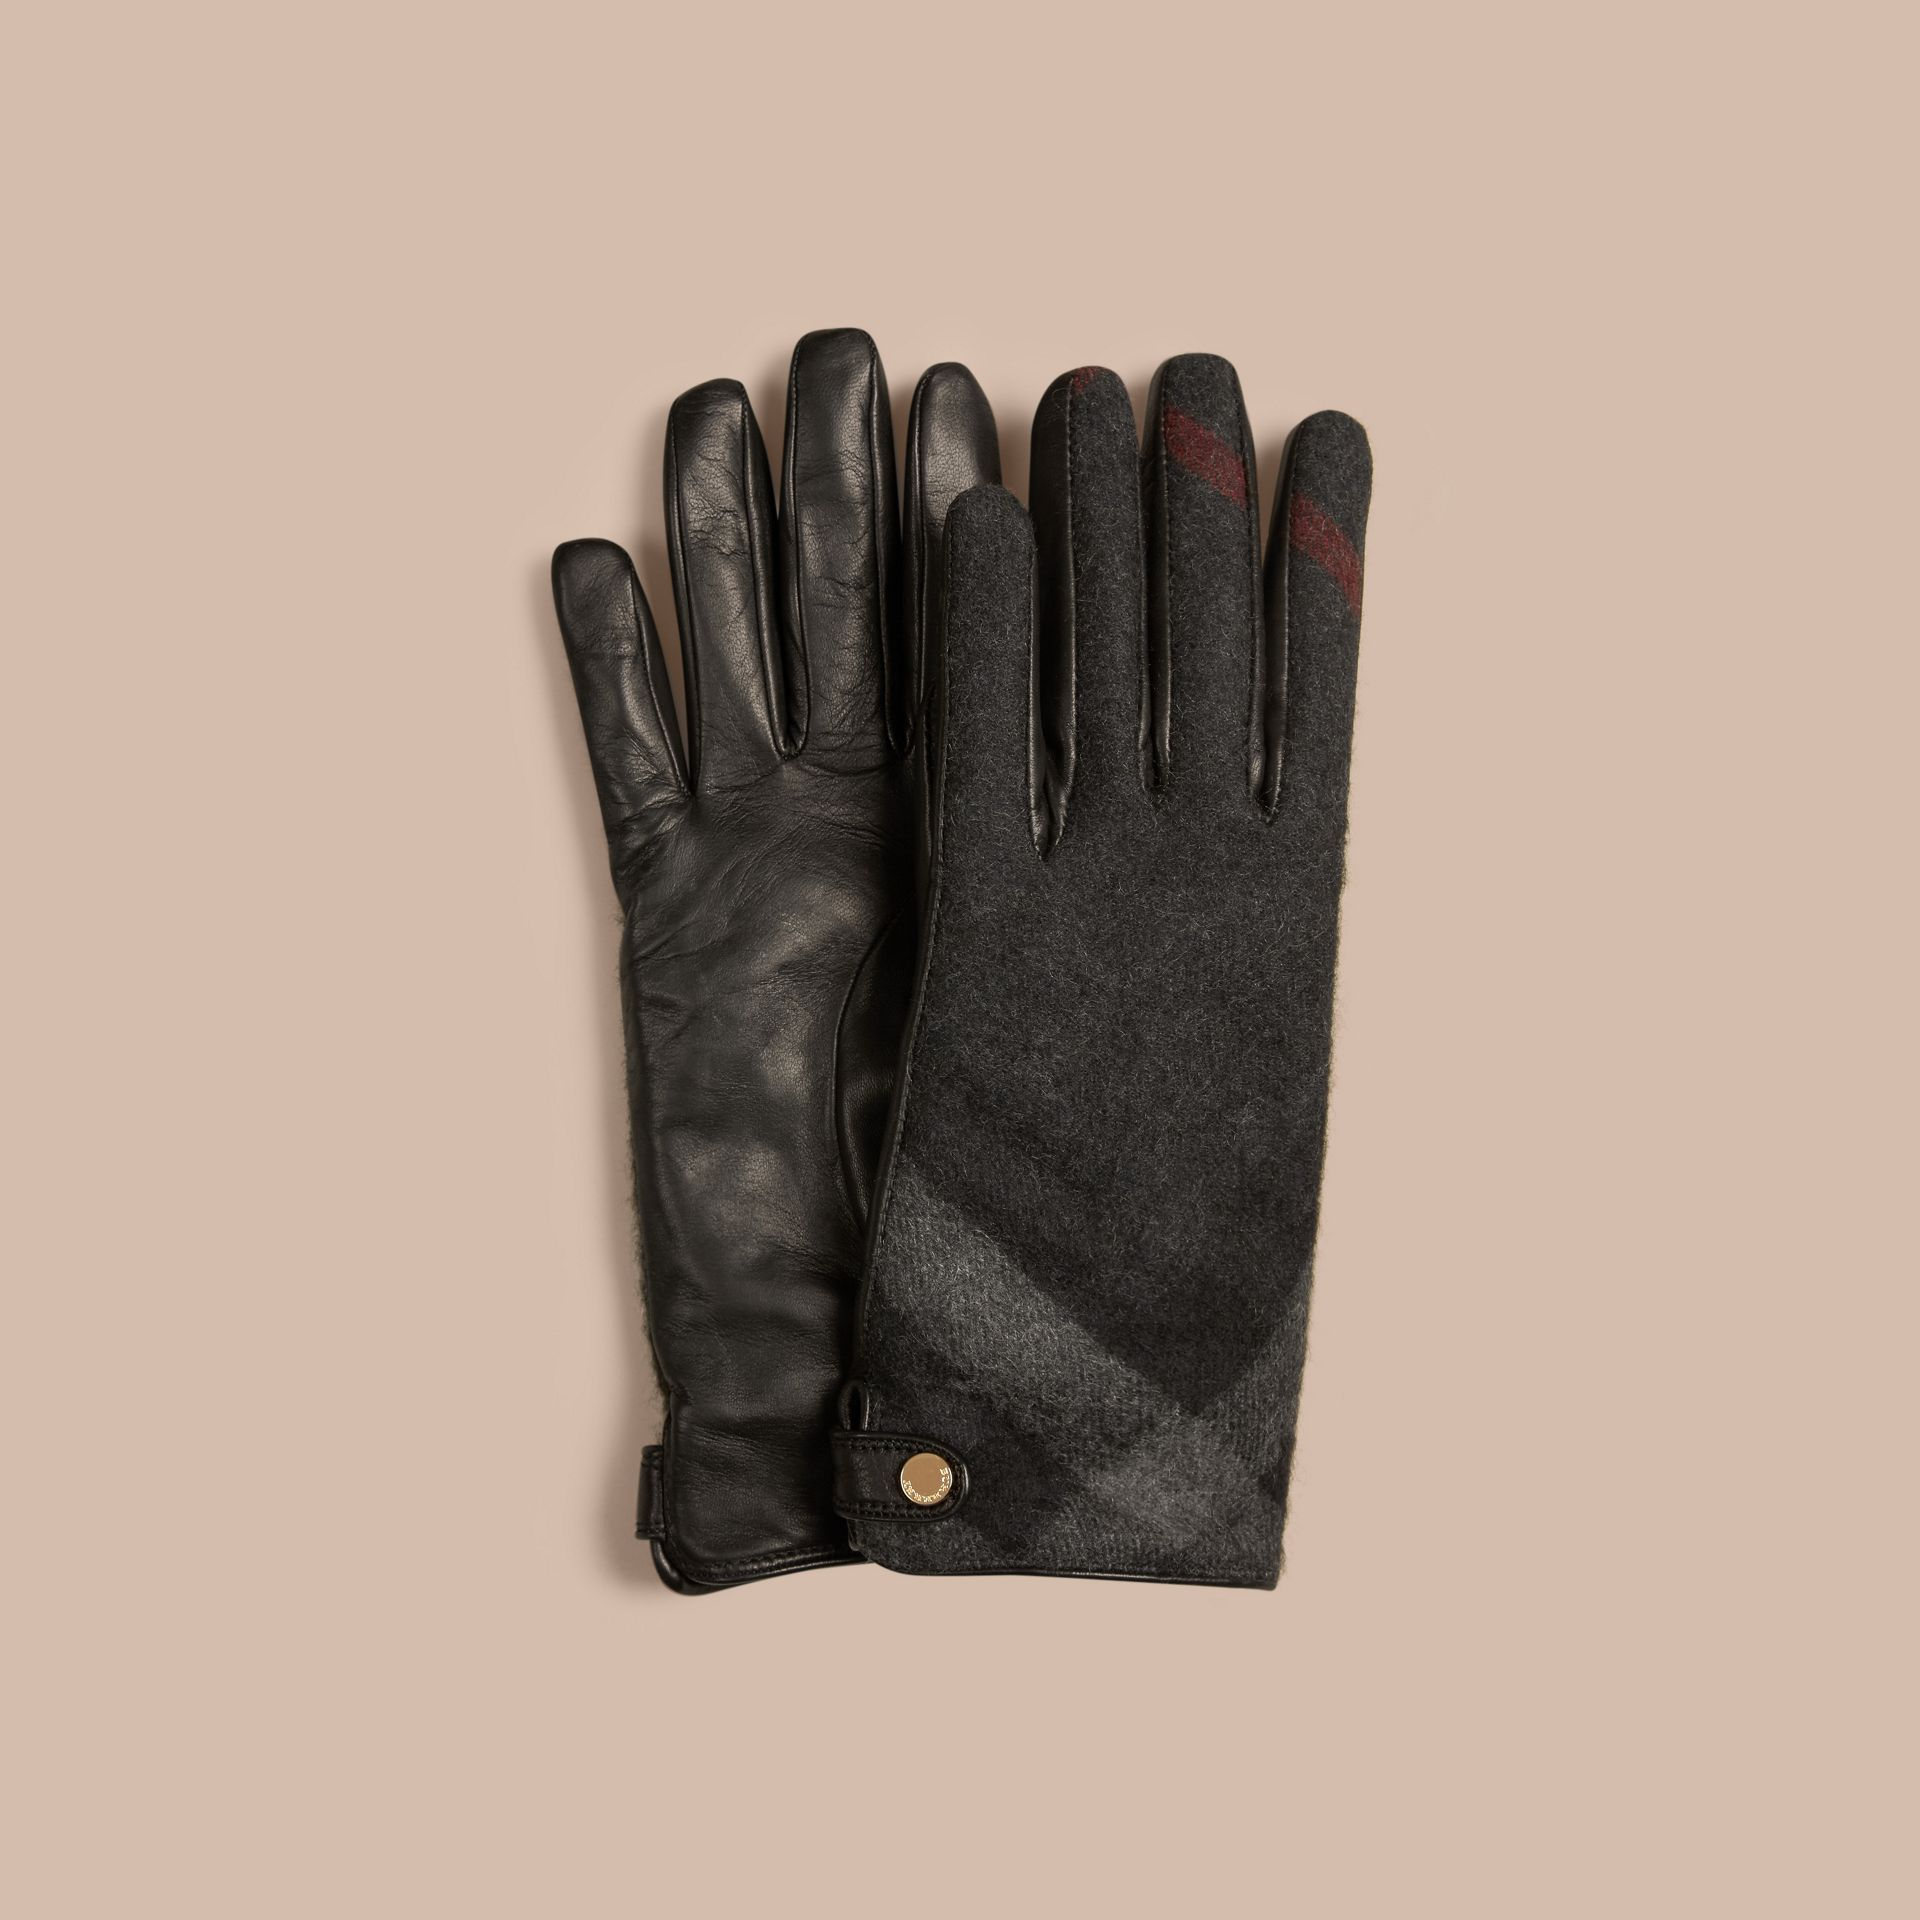 Charcoal Leather and Check Cashmere Gloves Charcoal - gallery image 1